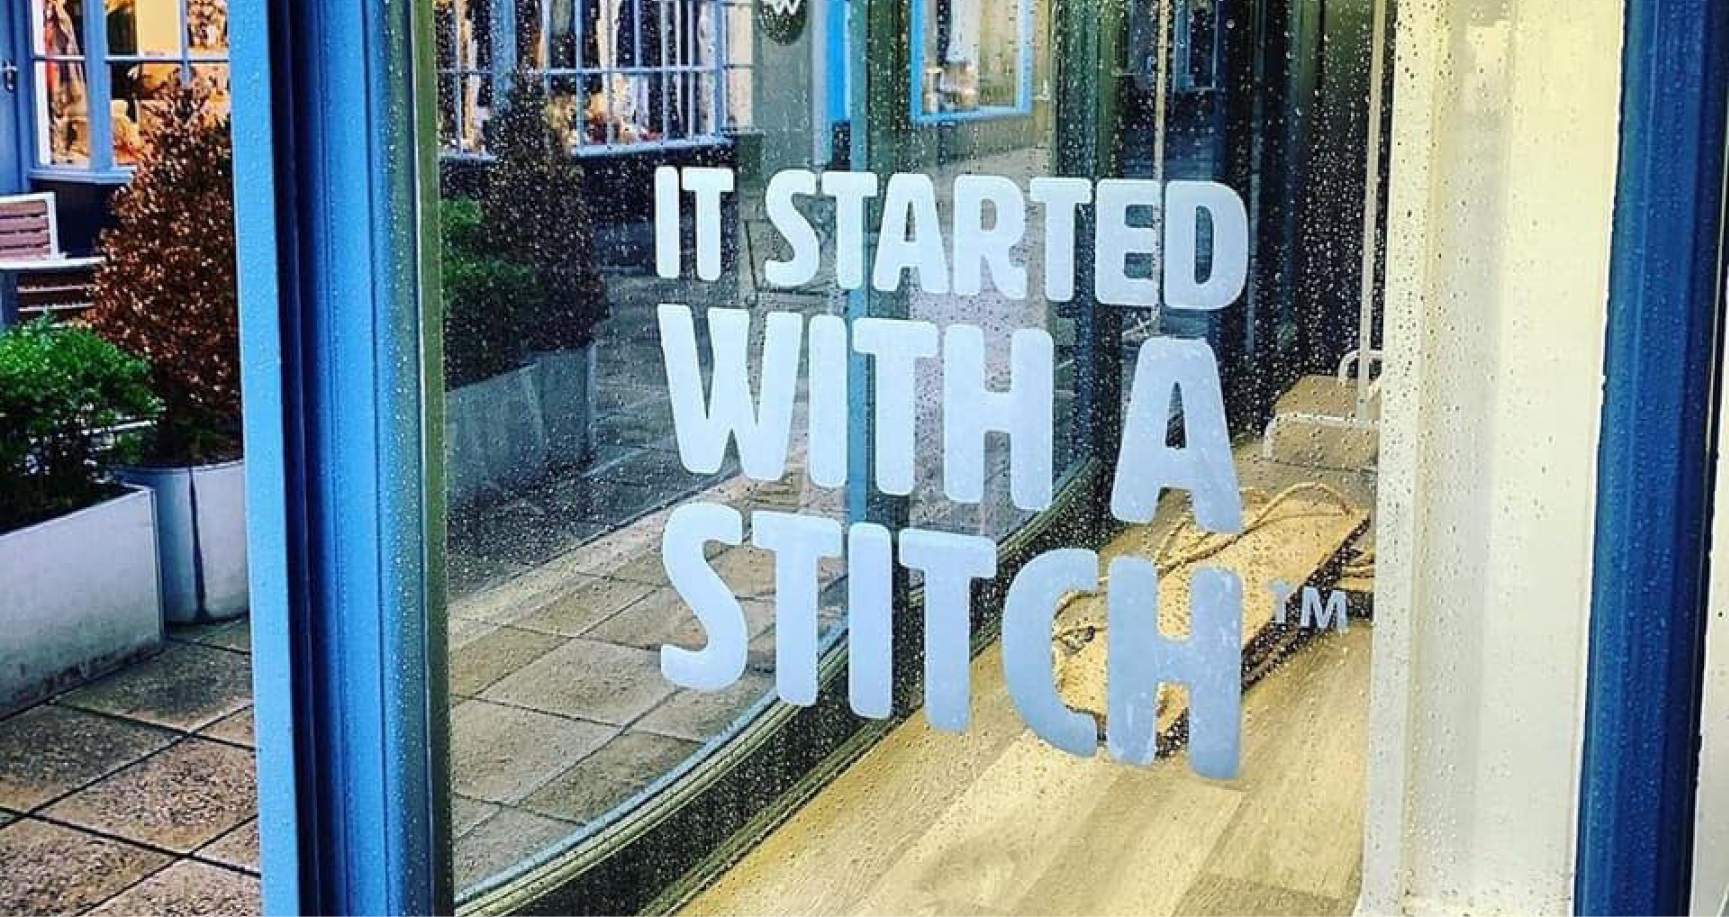 It started with a stitch vinyl graphic on a window